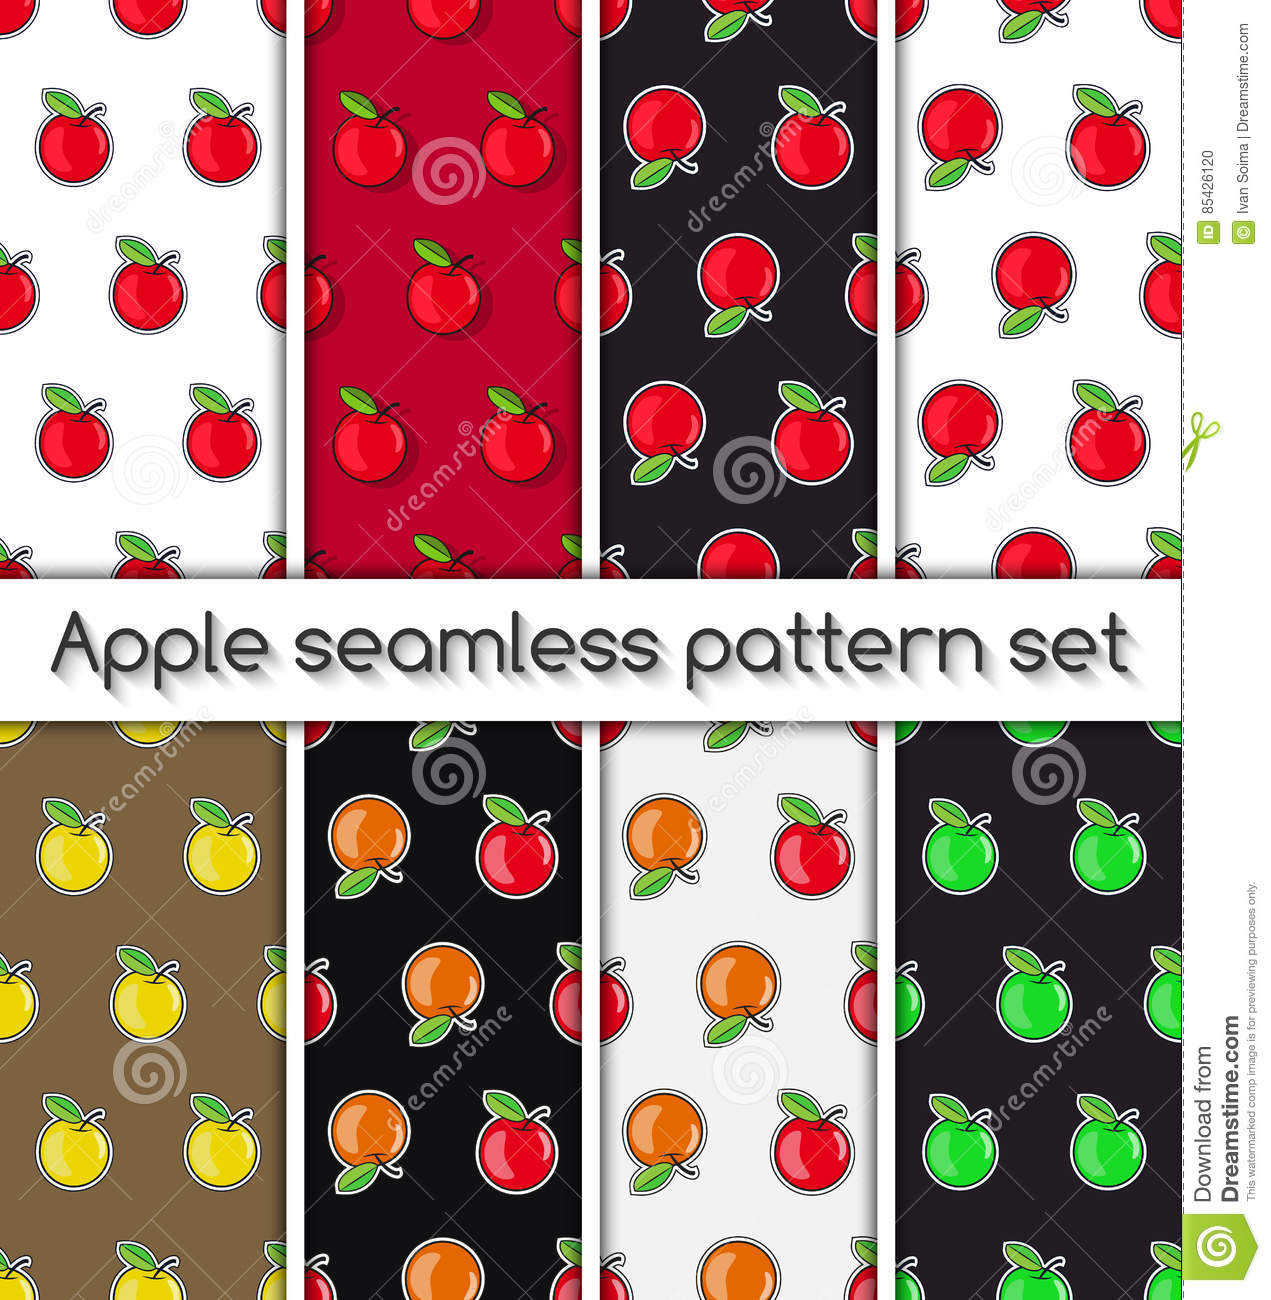 Set of patterns with apples, seamless texture, wallpaper.